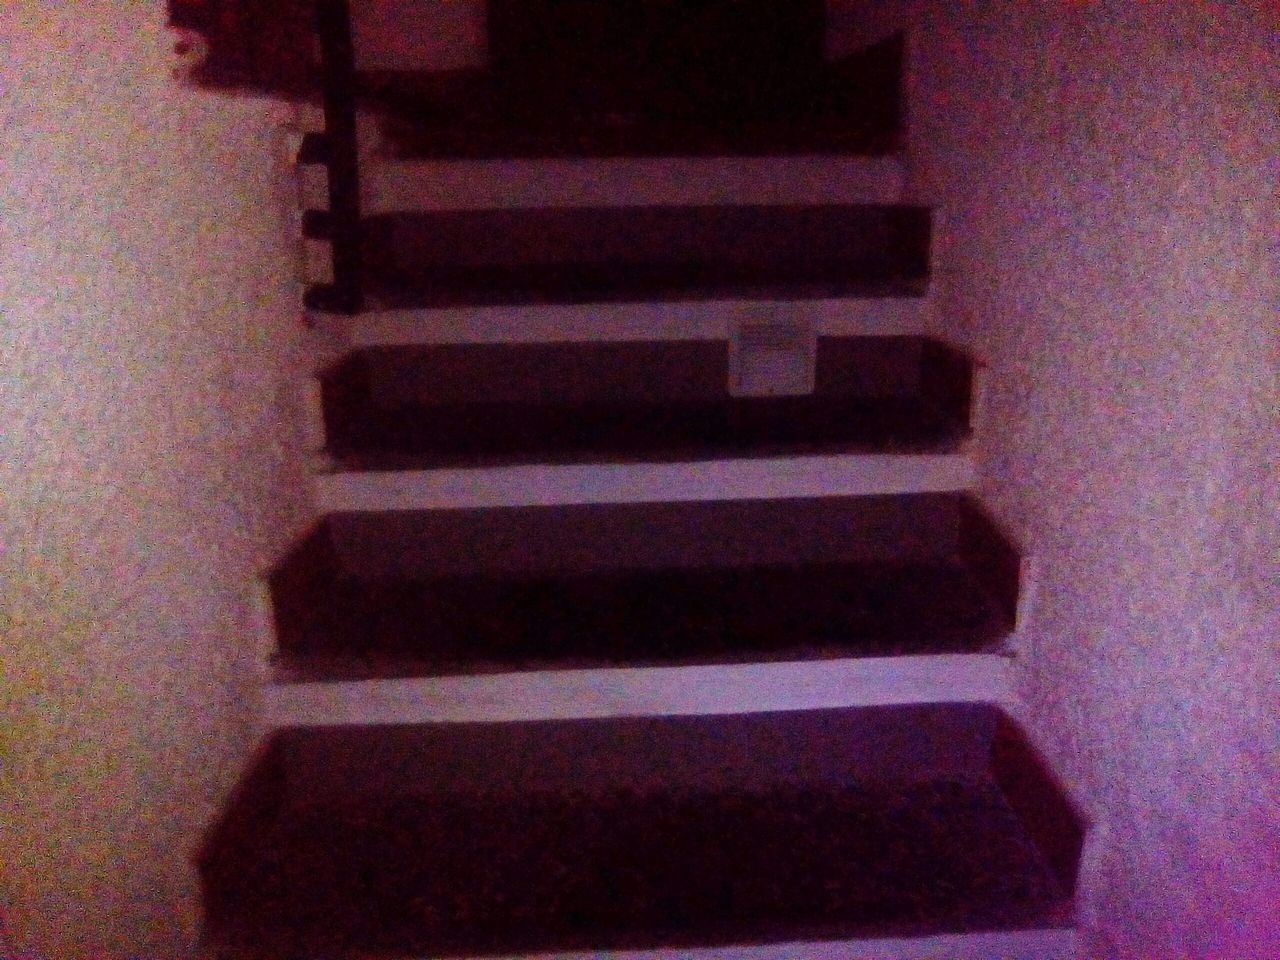 steps and staircases, steps, staircase, in a row, indoors, no people, stairs, day